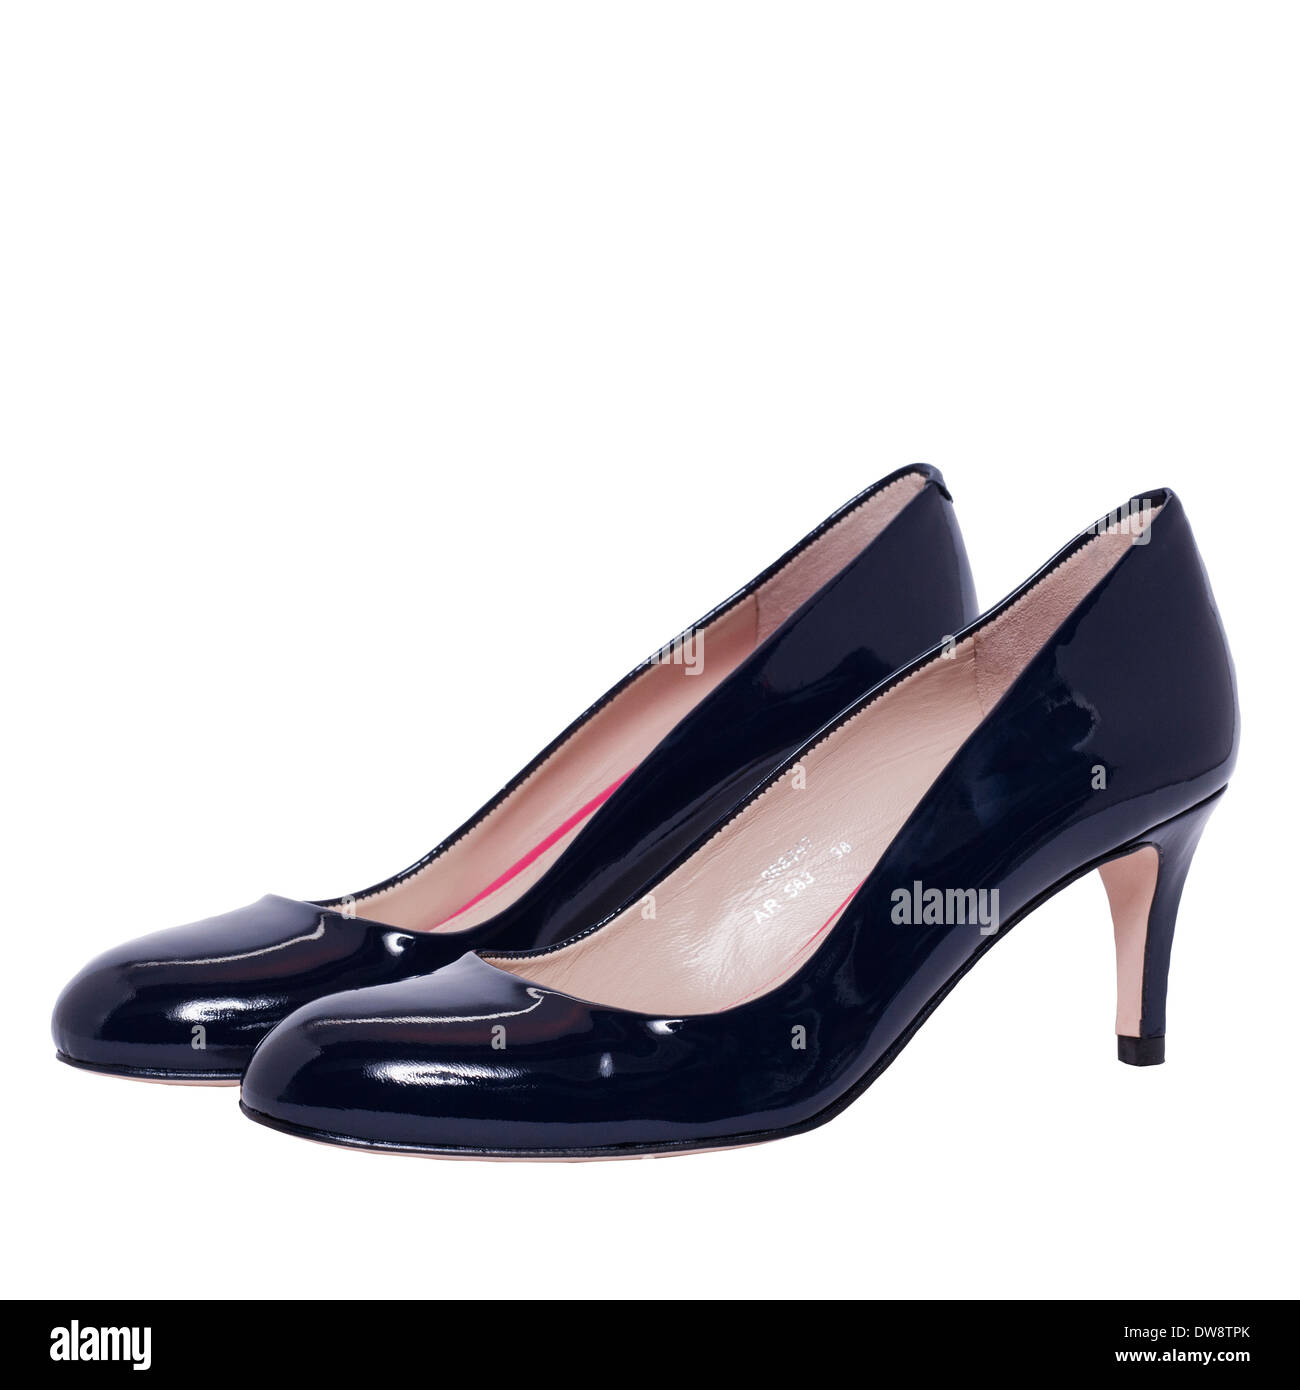 A pair of womens blue patent court shoes on a white background - Stock Image